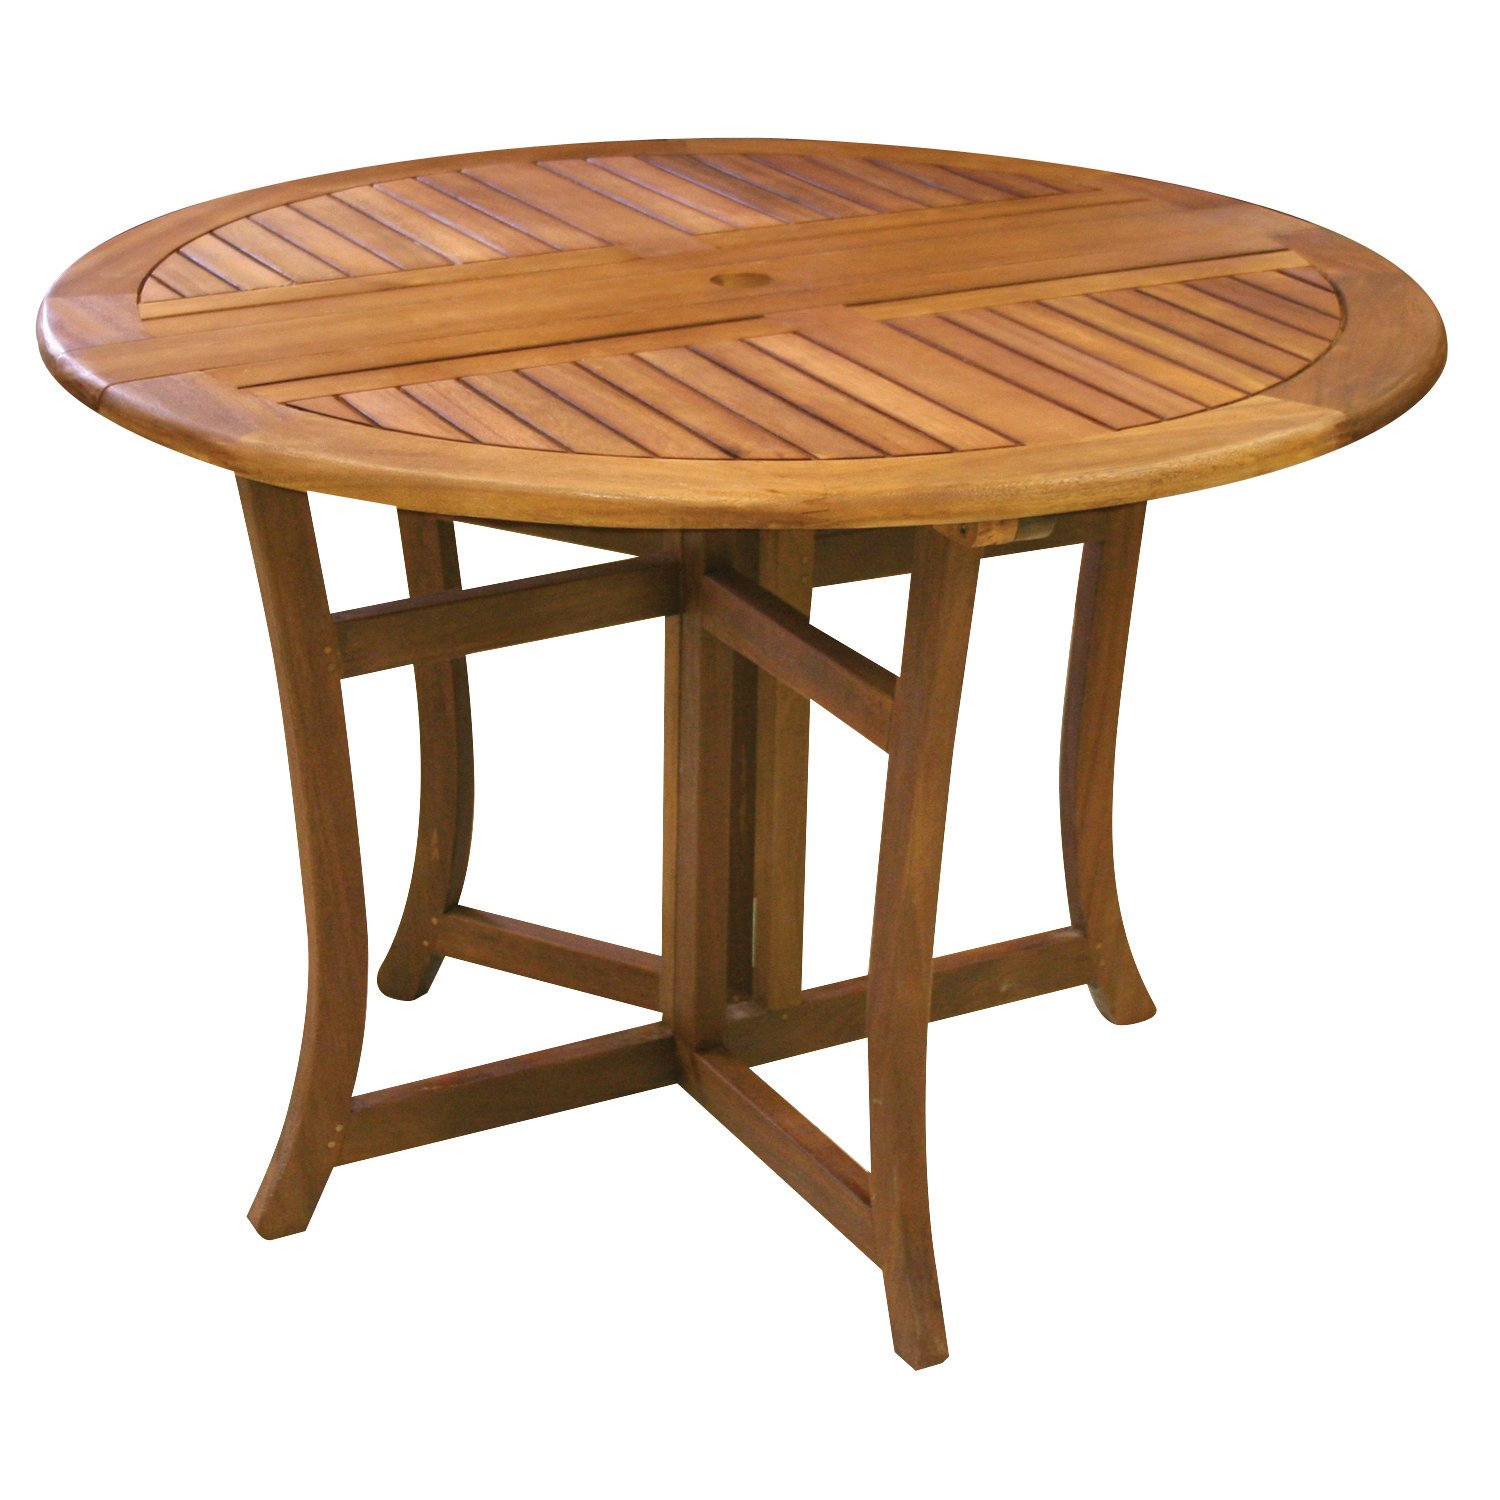 Amazon.com: Eucalyptus 43 Inch Round Folding Deck Table: Garden ...